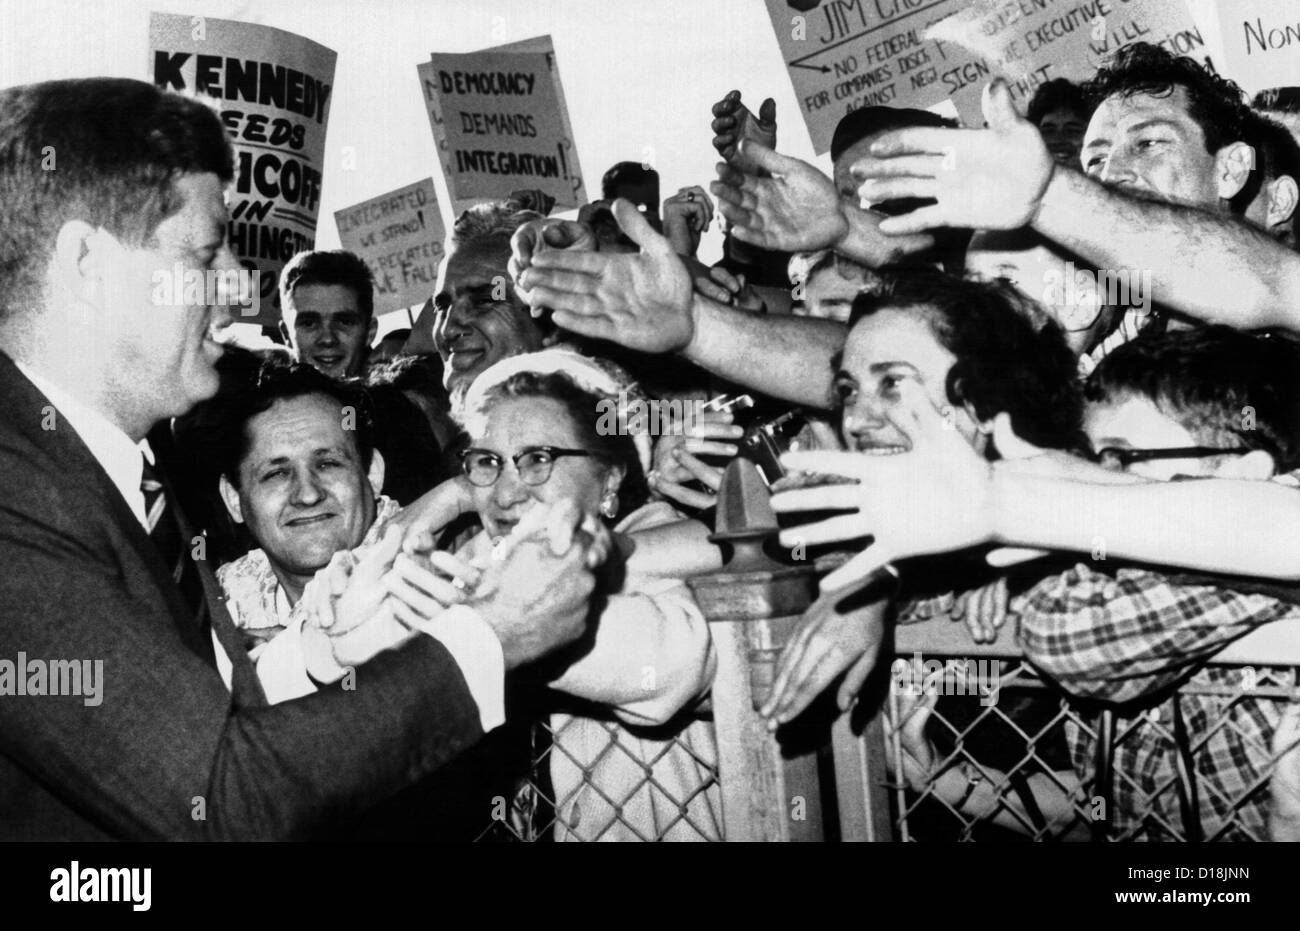 President John Kennedy greets well-wishers. JFK shakes hands at the Bridgeport, Connecticut airport while campaigning Stock Photo